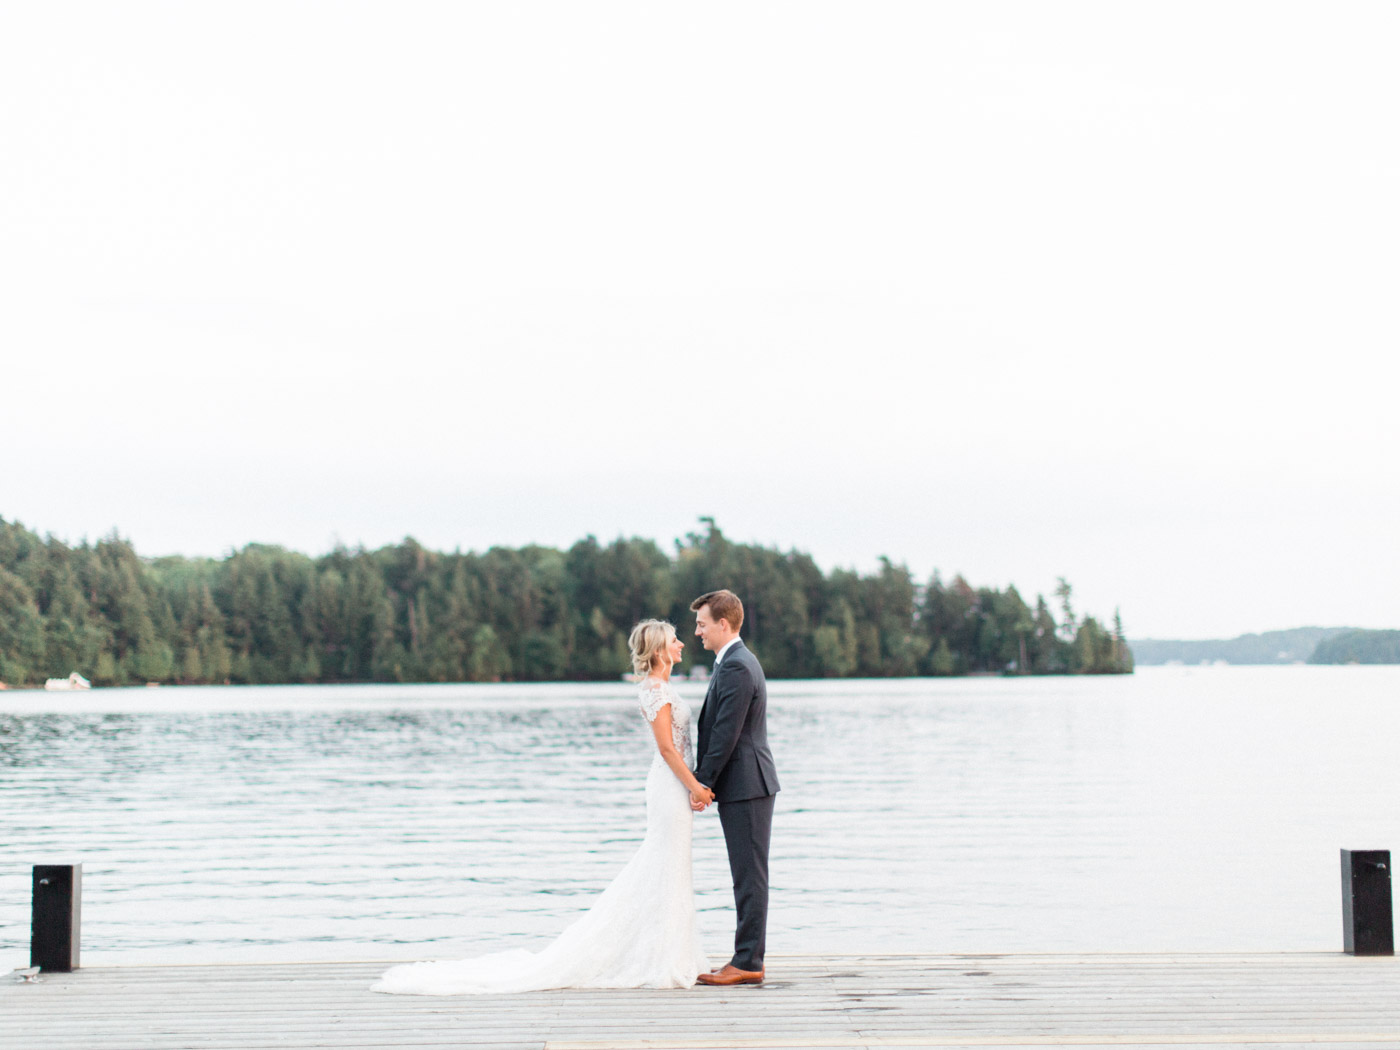 summery muskoka waterfront wedding at the jw marriott rosseau